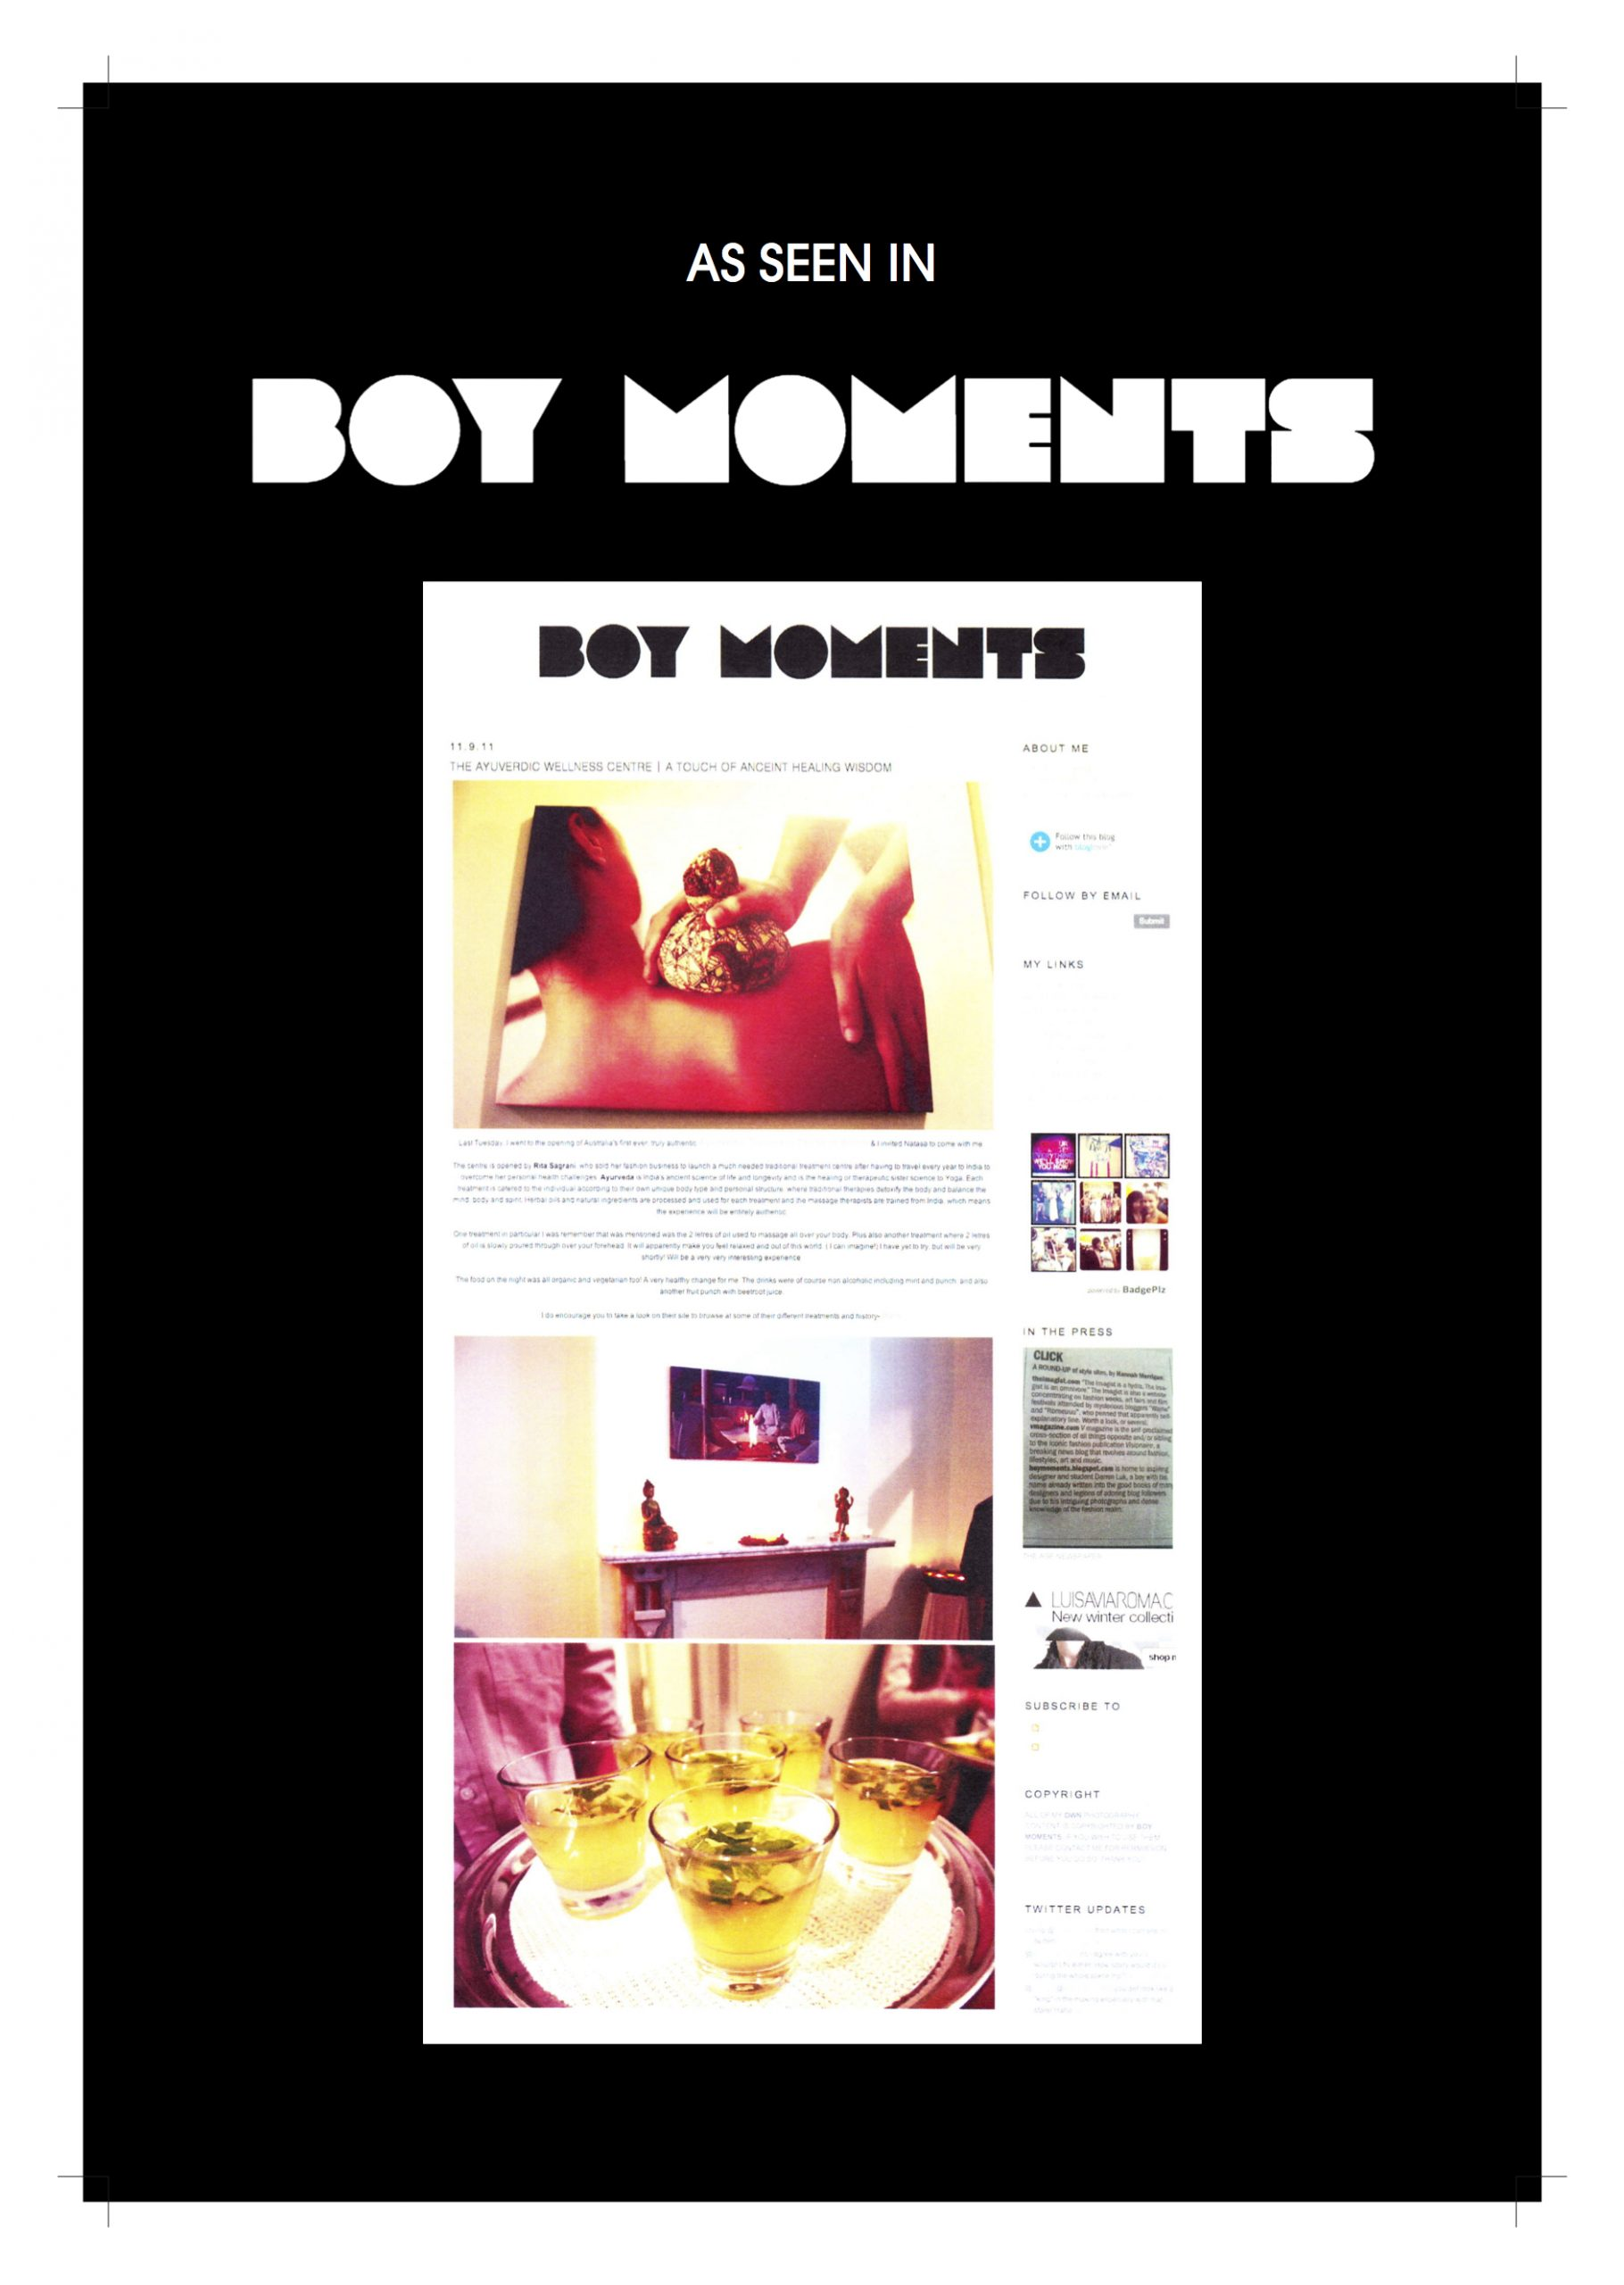 Article about ayurvedic wellness centre in Boy moments